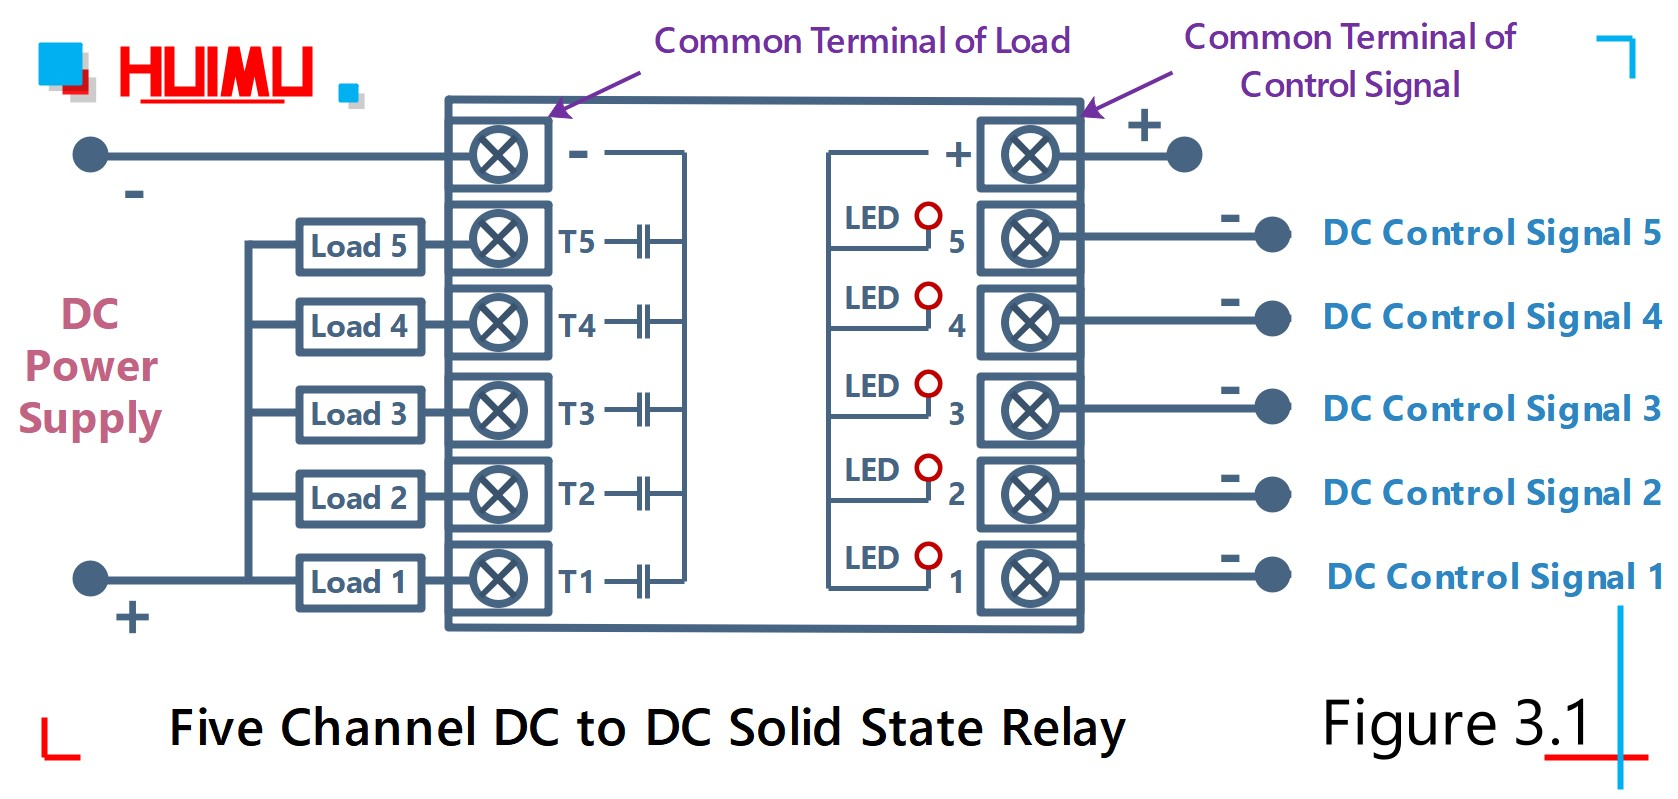 How to wire MGR mager ST5-5DD five channel dc to dc solid state relay?